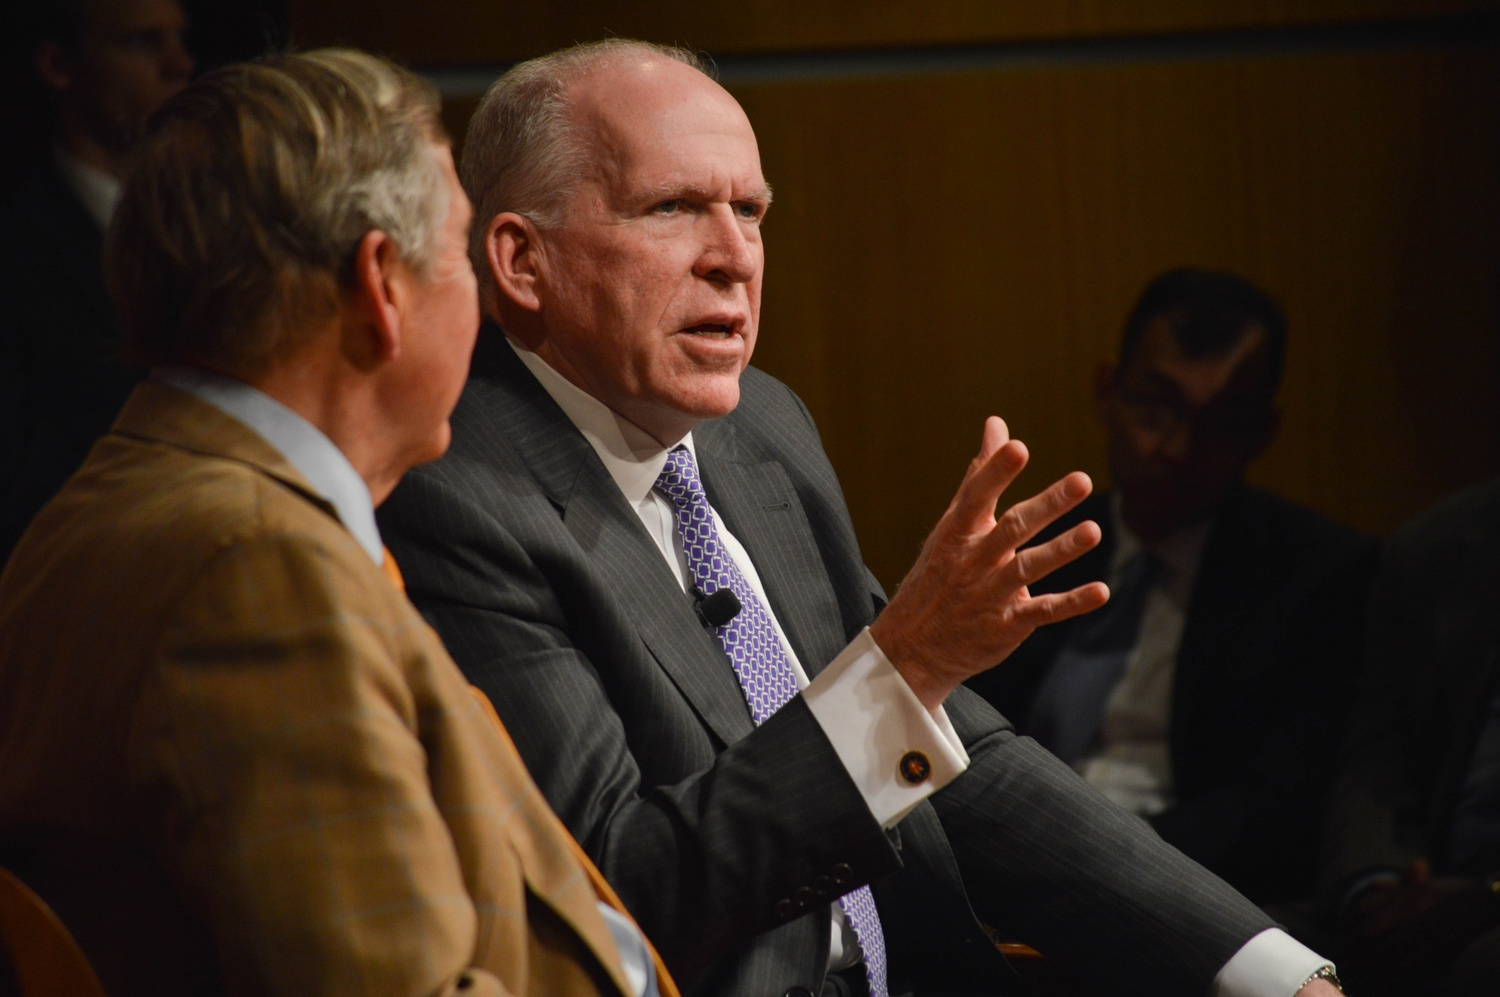 CIA Director at the IOP